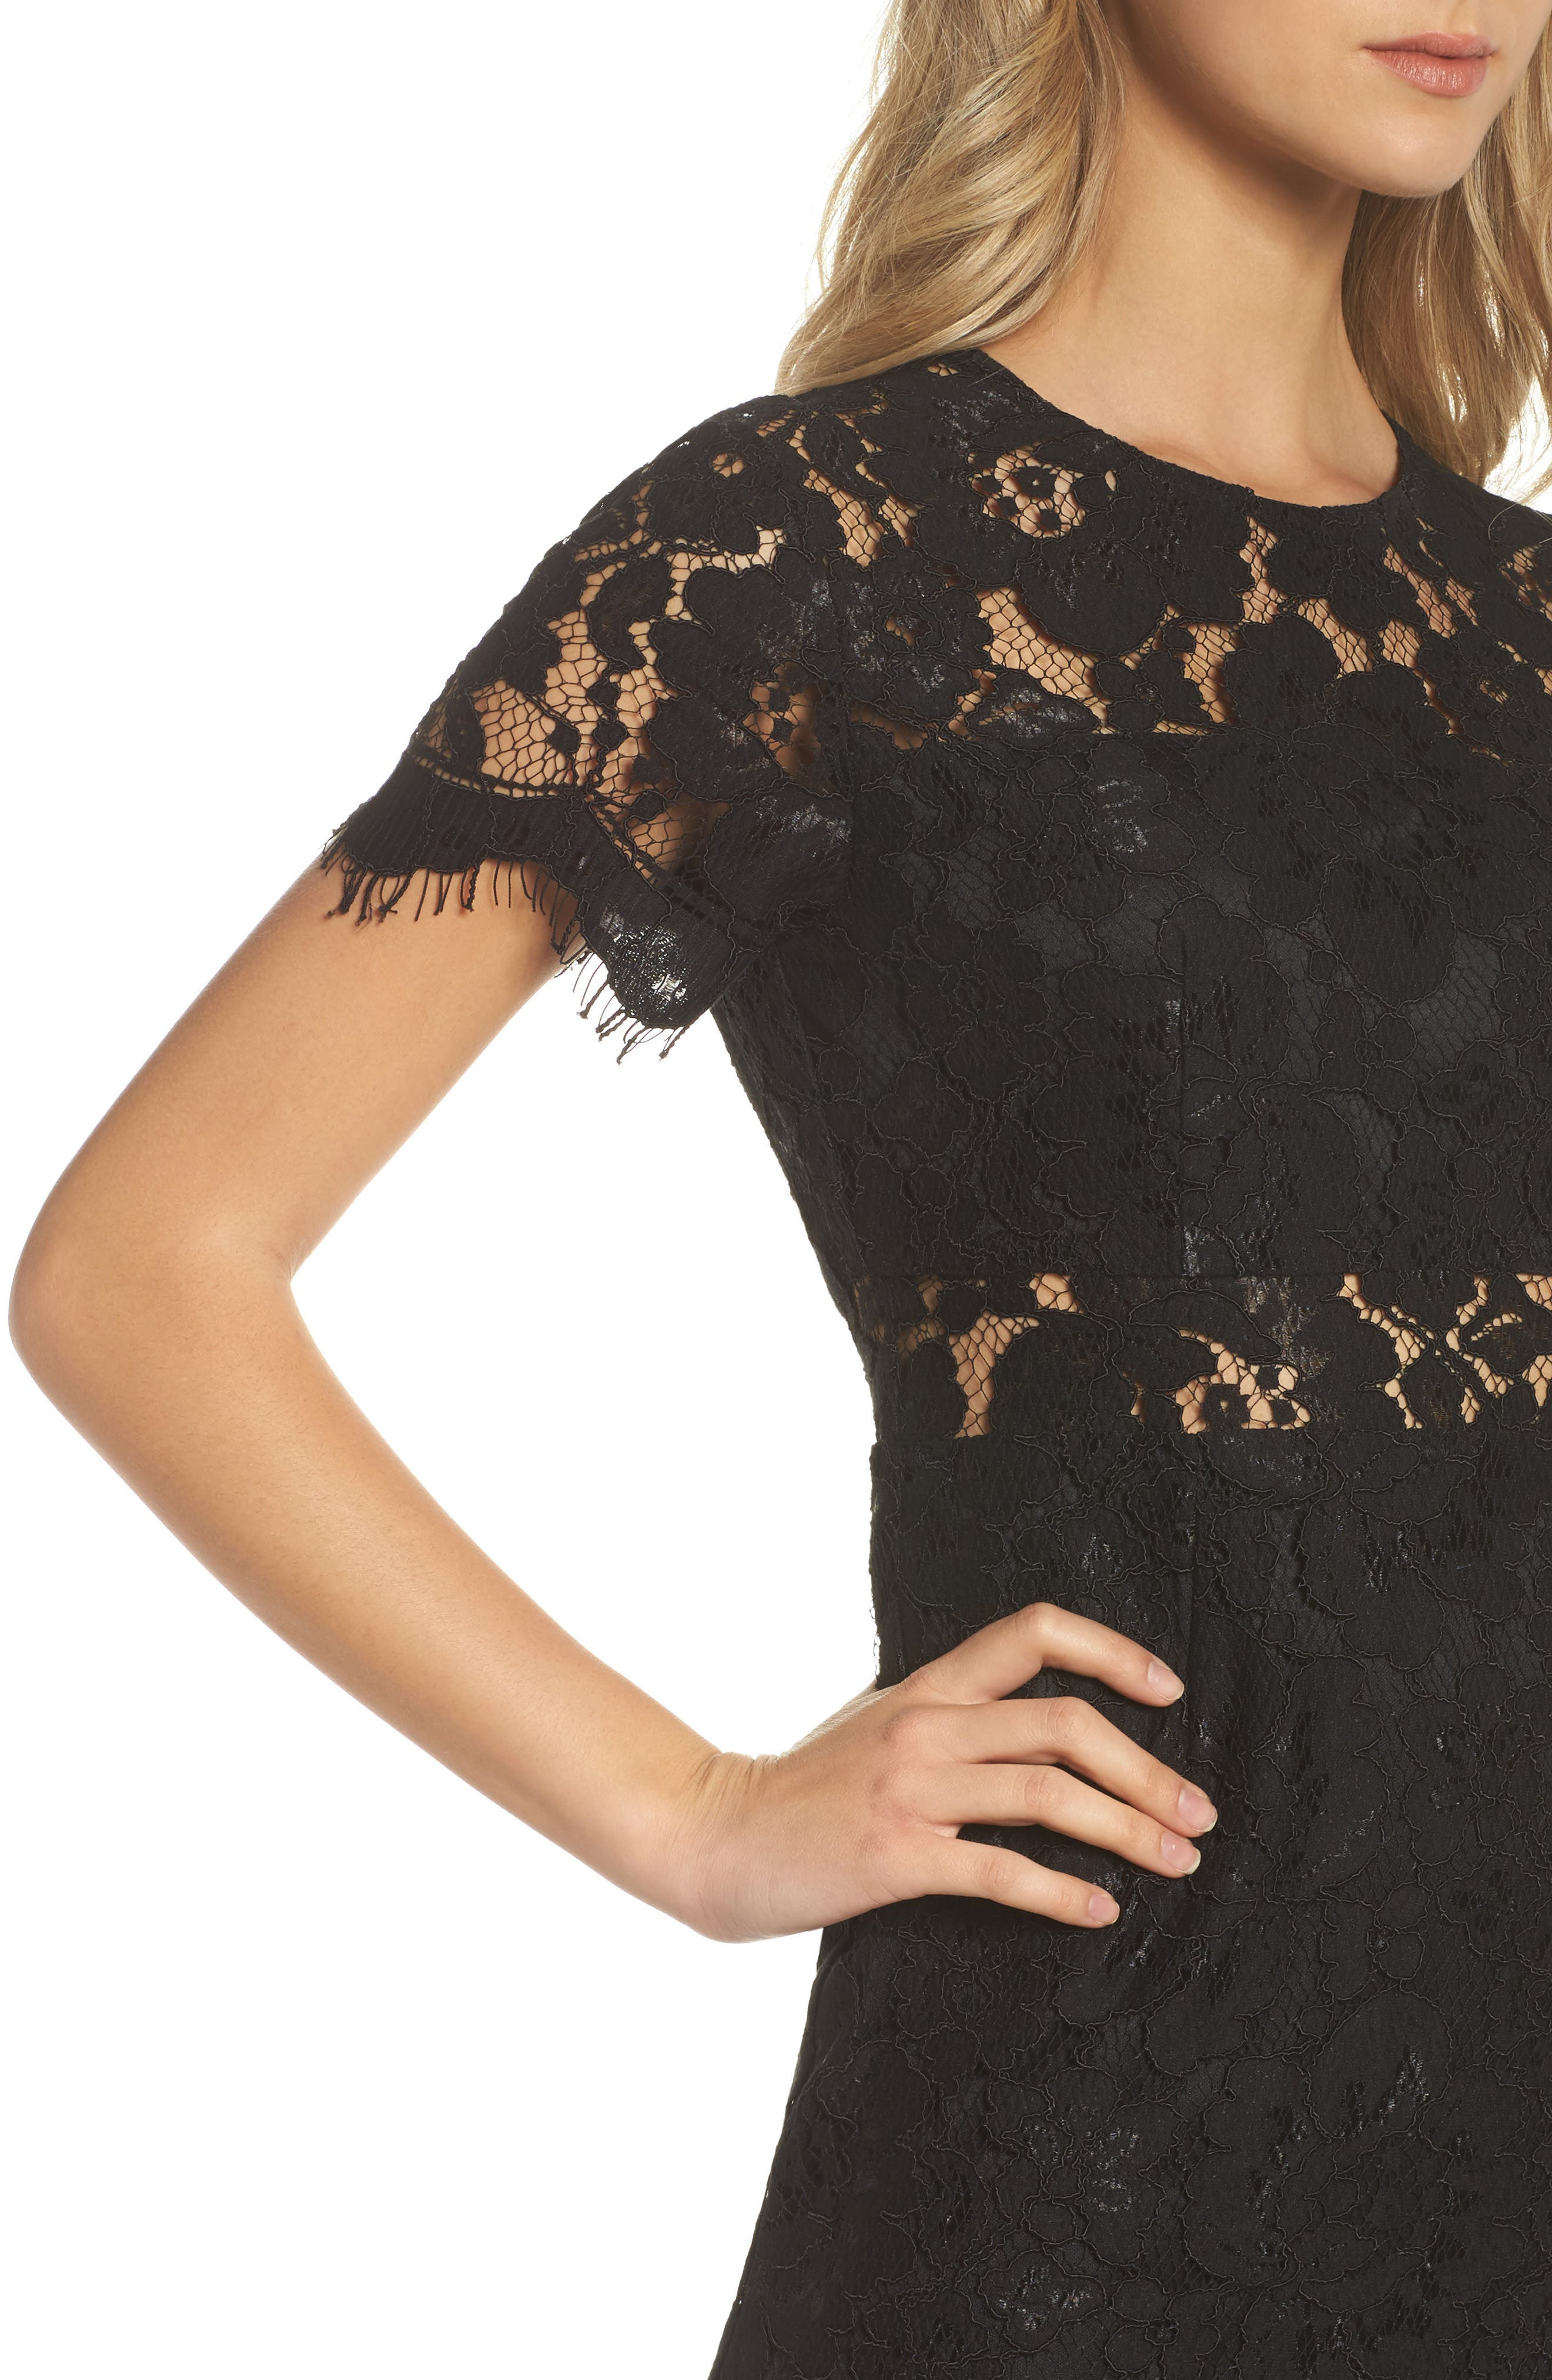 Lace Midi Dress,                             Alternate thumbnail 4, color,                             Black